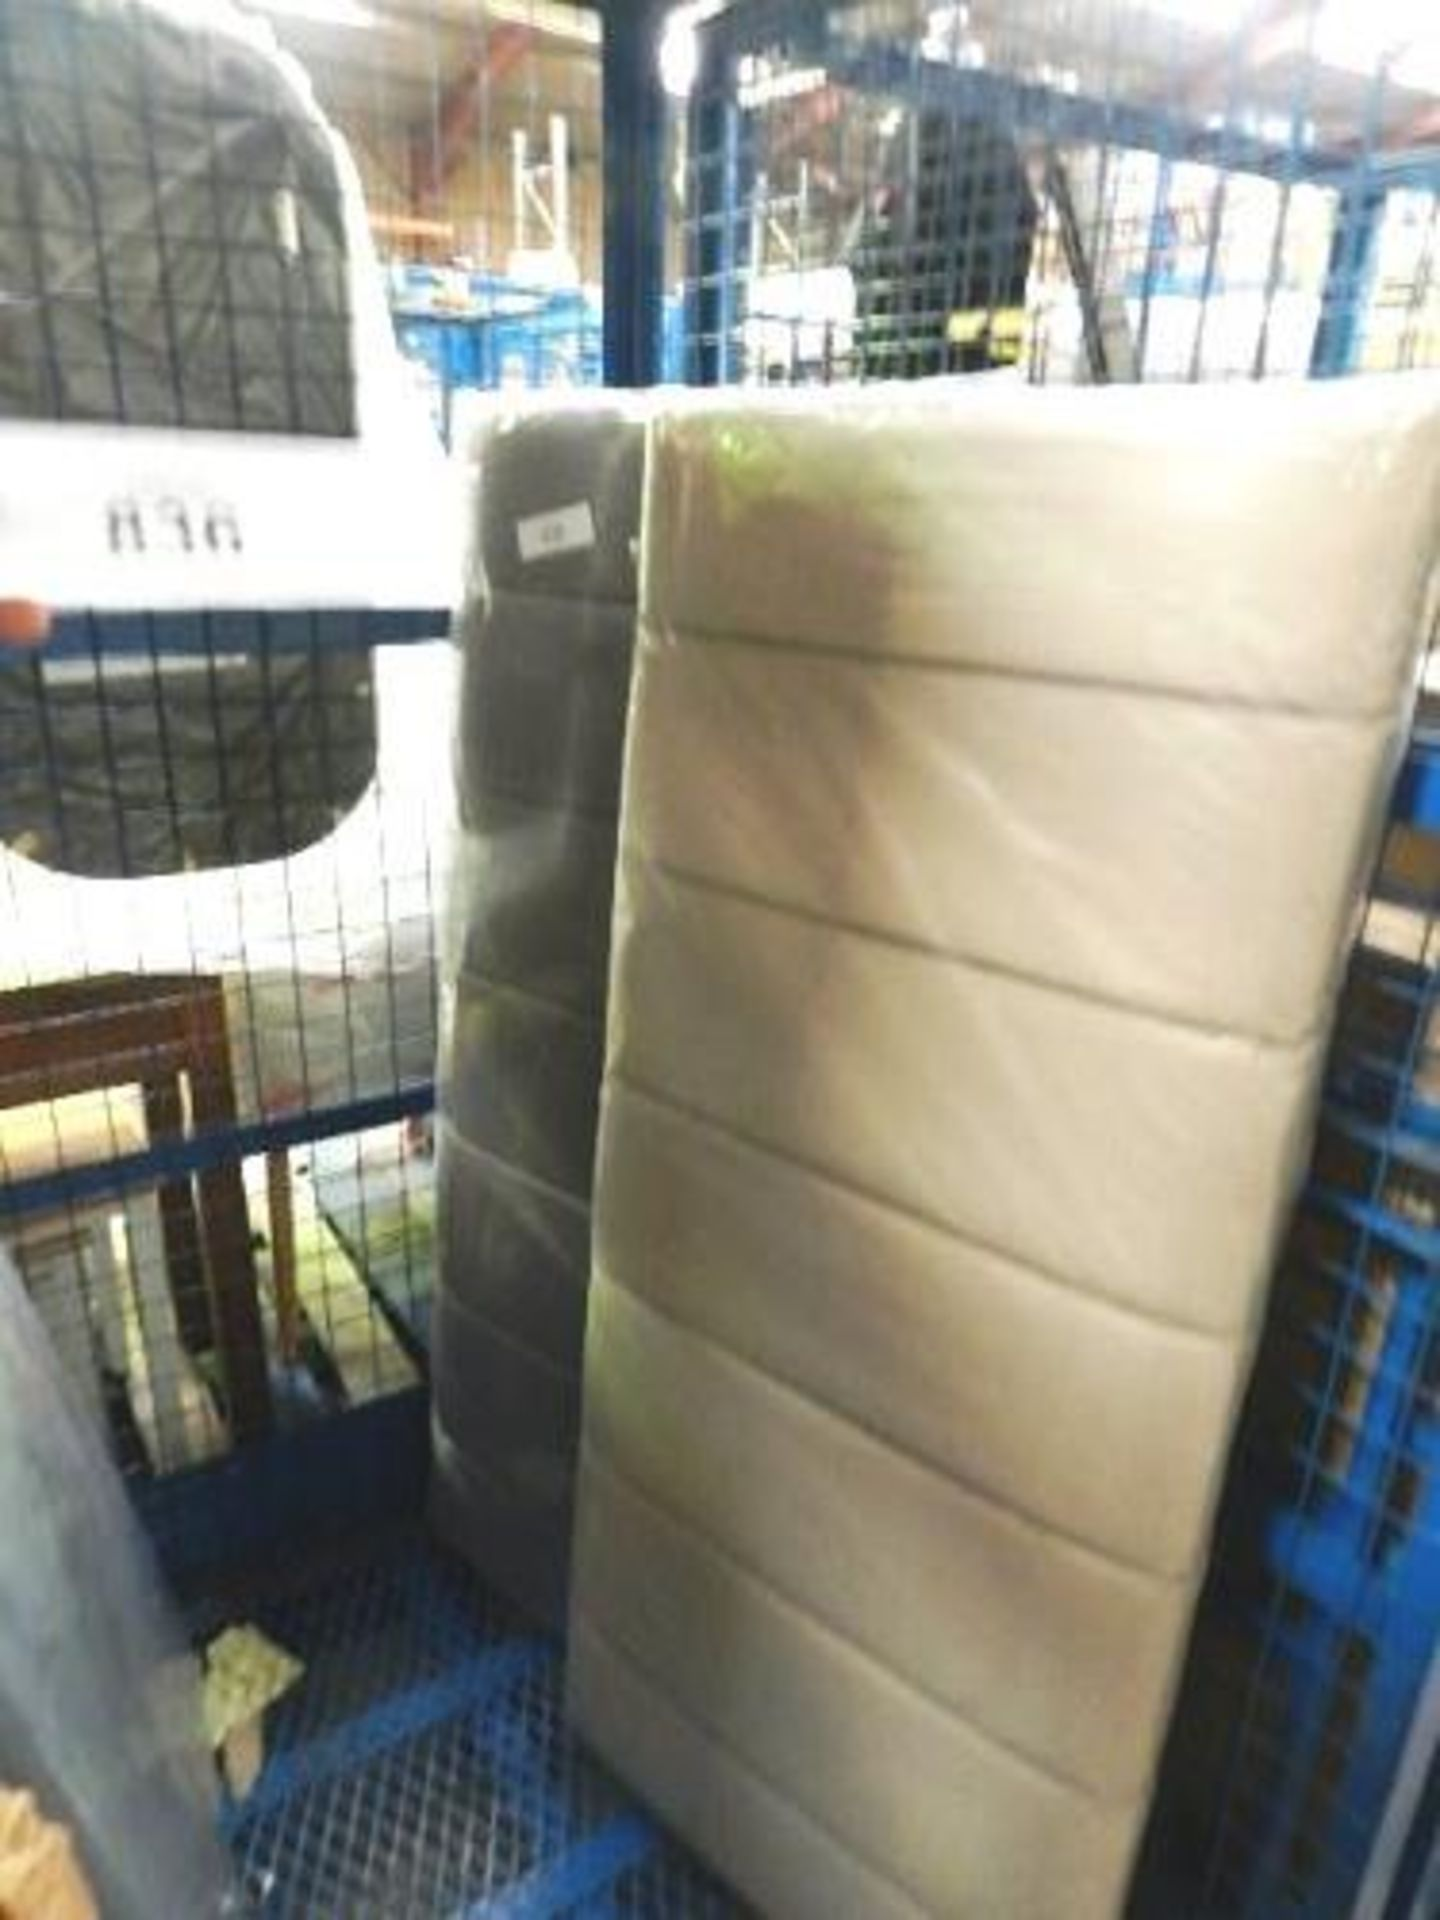 Lot 836 - 2 x Fairmont Park Bellaire headboards, colour cedar and grey, RRP £56.00 each - Sealed new in box (